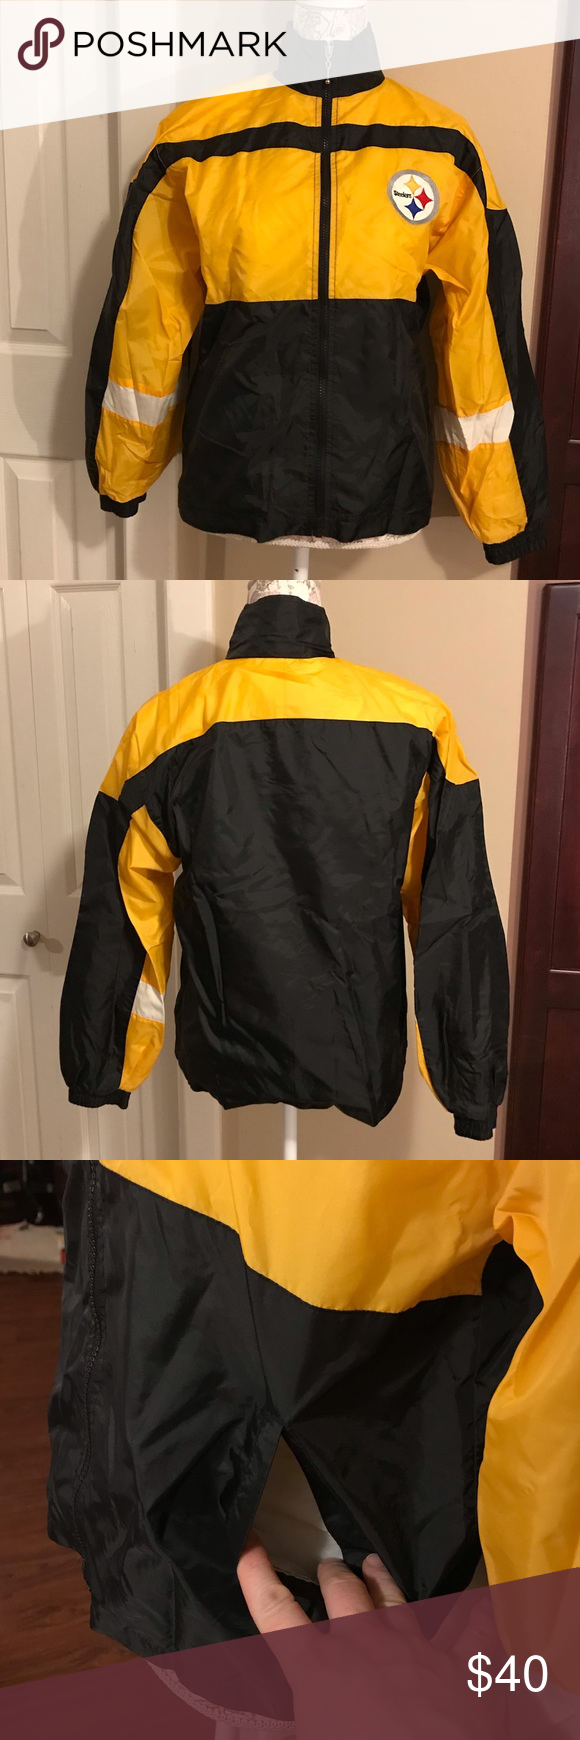 huge selection of e3da6 59893 Steelers NFL Mighty-Mac Touchdown Club Jacket Kids size 14 ...